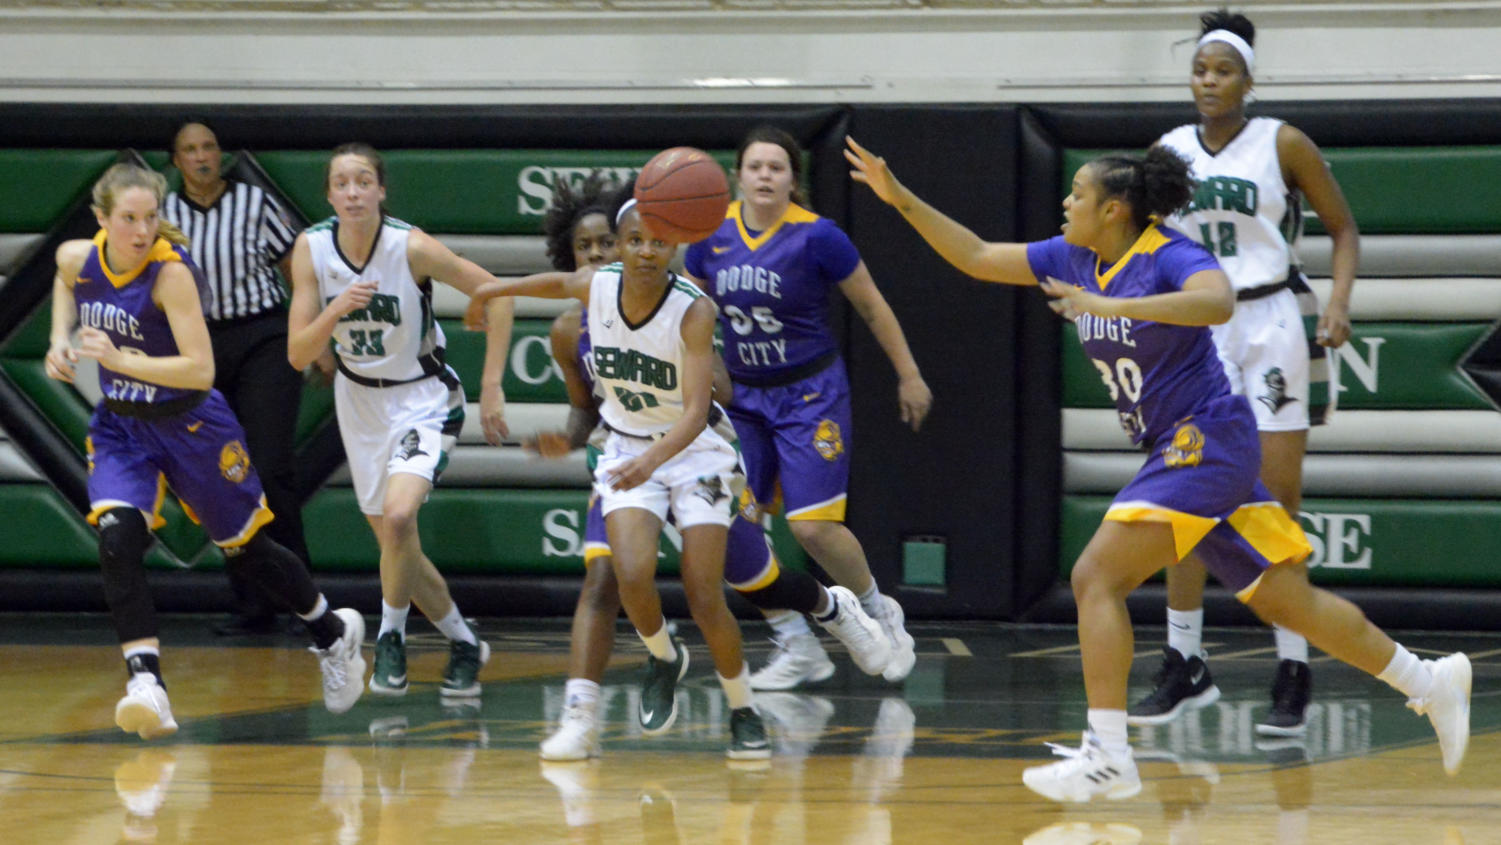 The Lady Saints fight for a loose ball against Dodge City on Jan 19. The Lady Saints played in the Greenhouse vs Dodge City. Seward won 63-51.